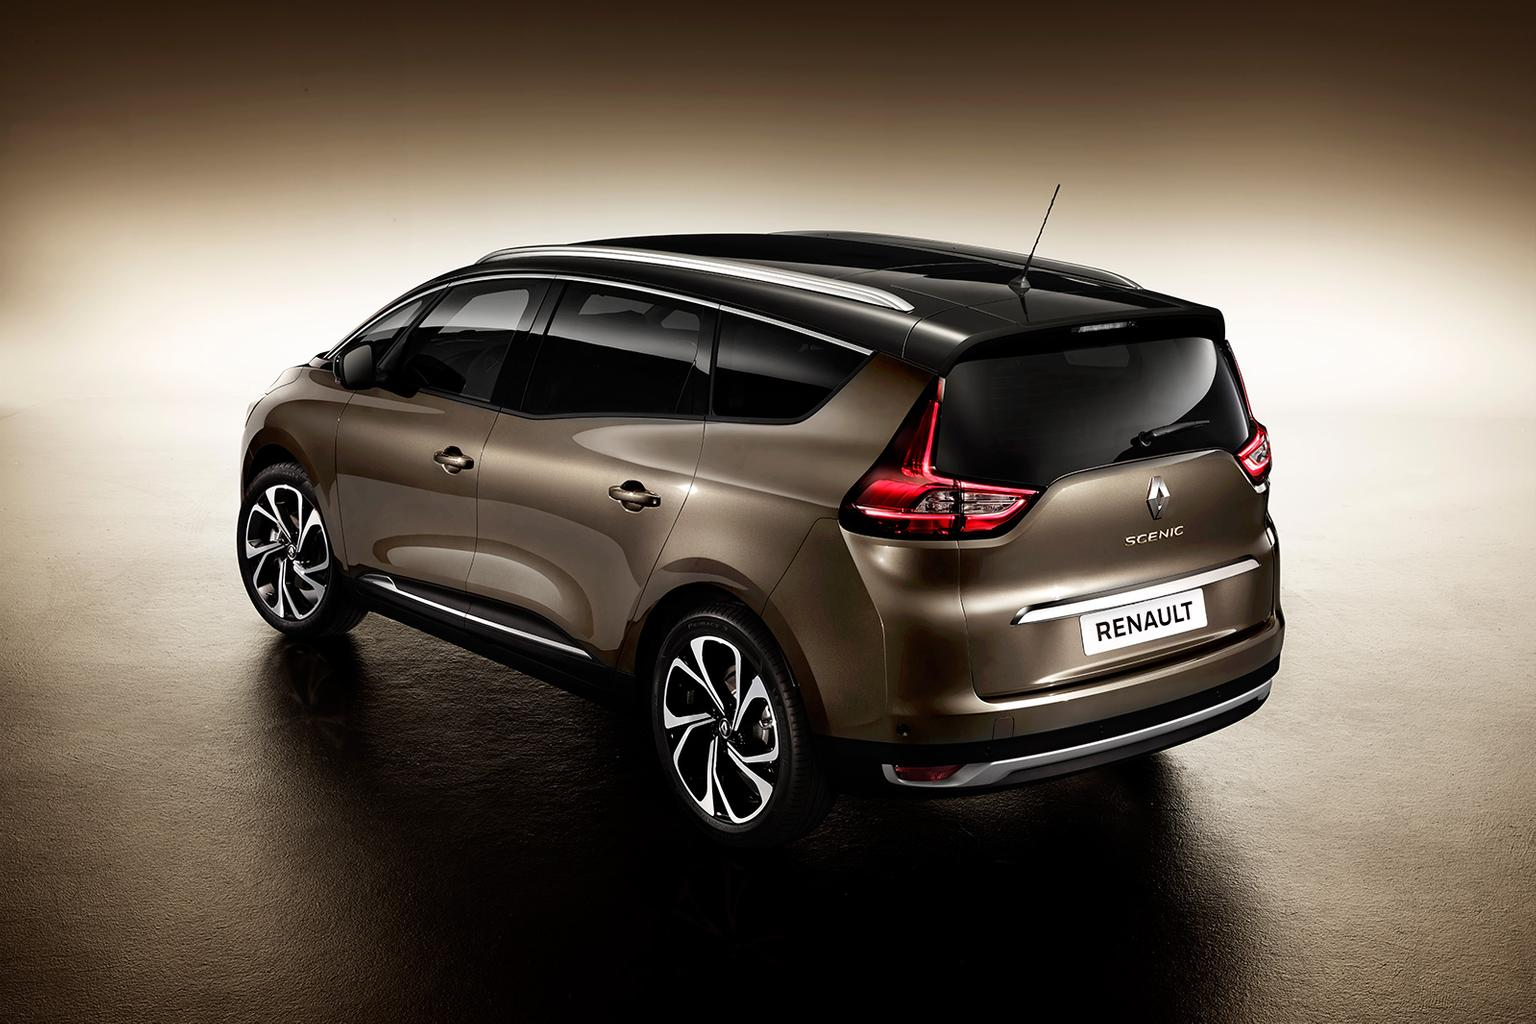 New Renault Grand Scenic unveiled